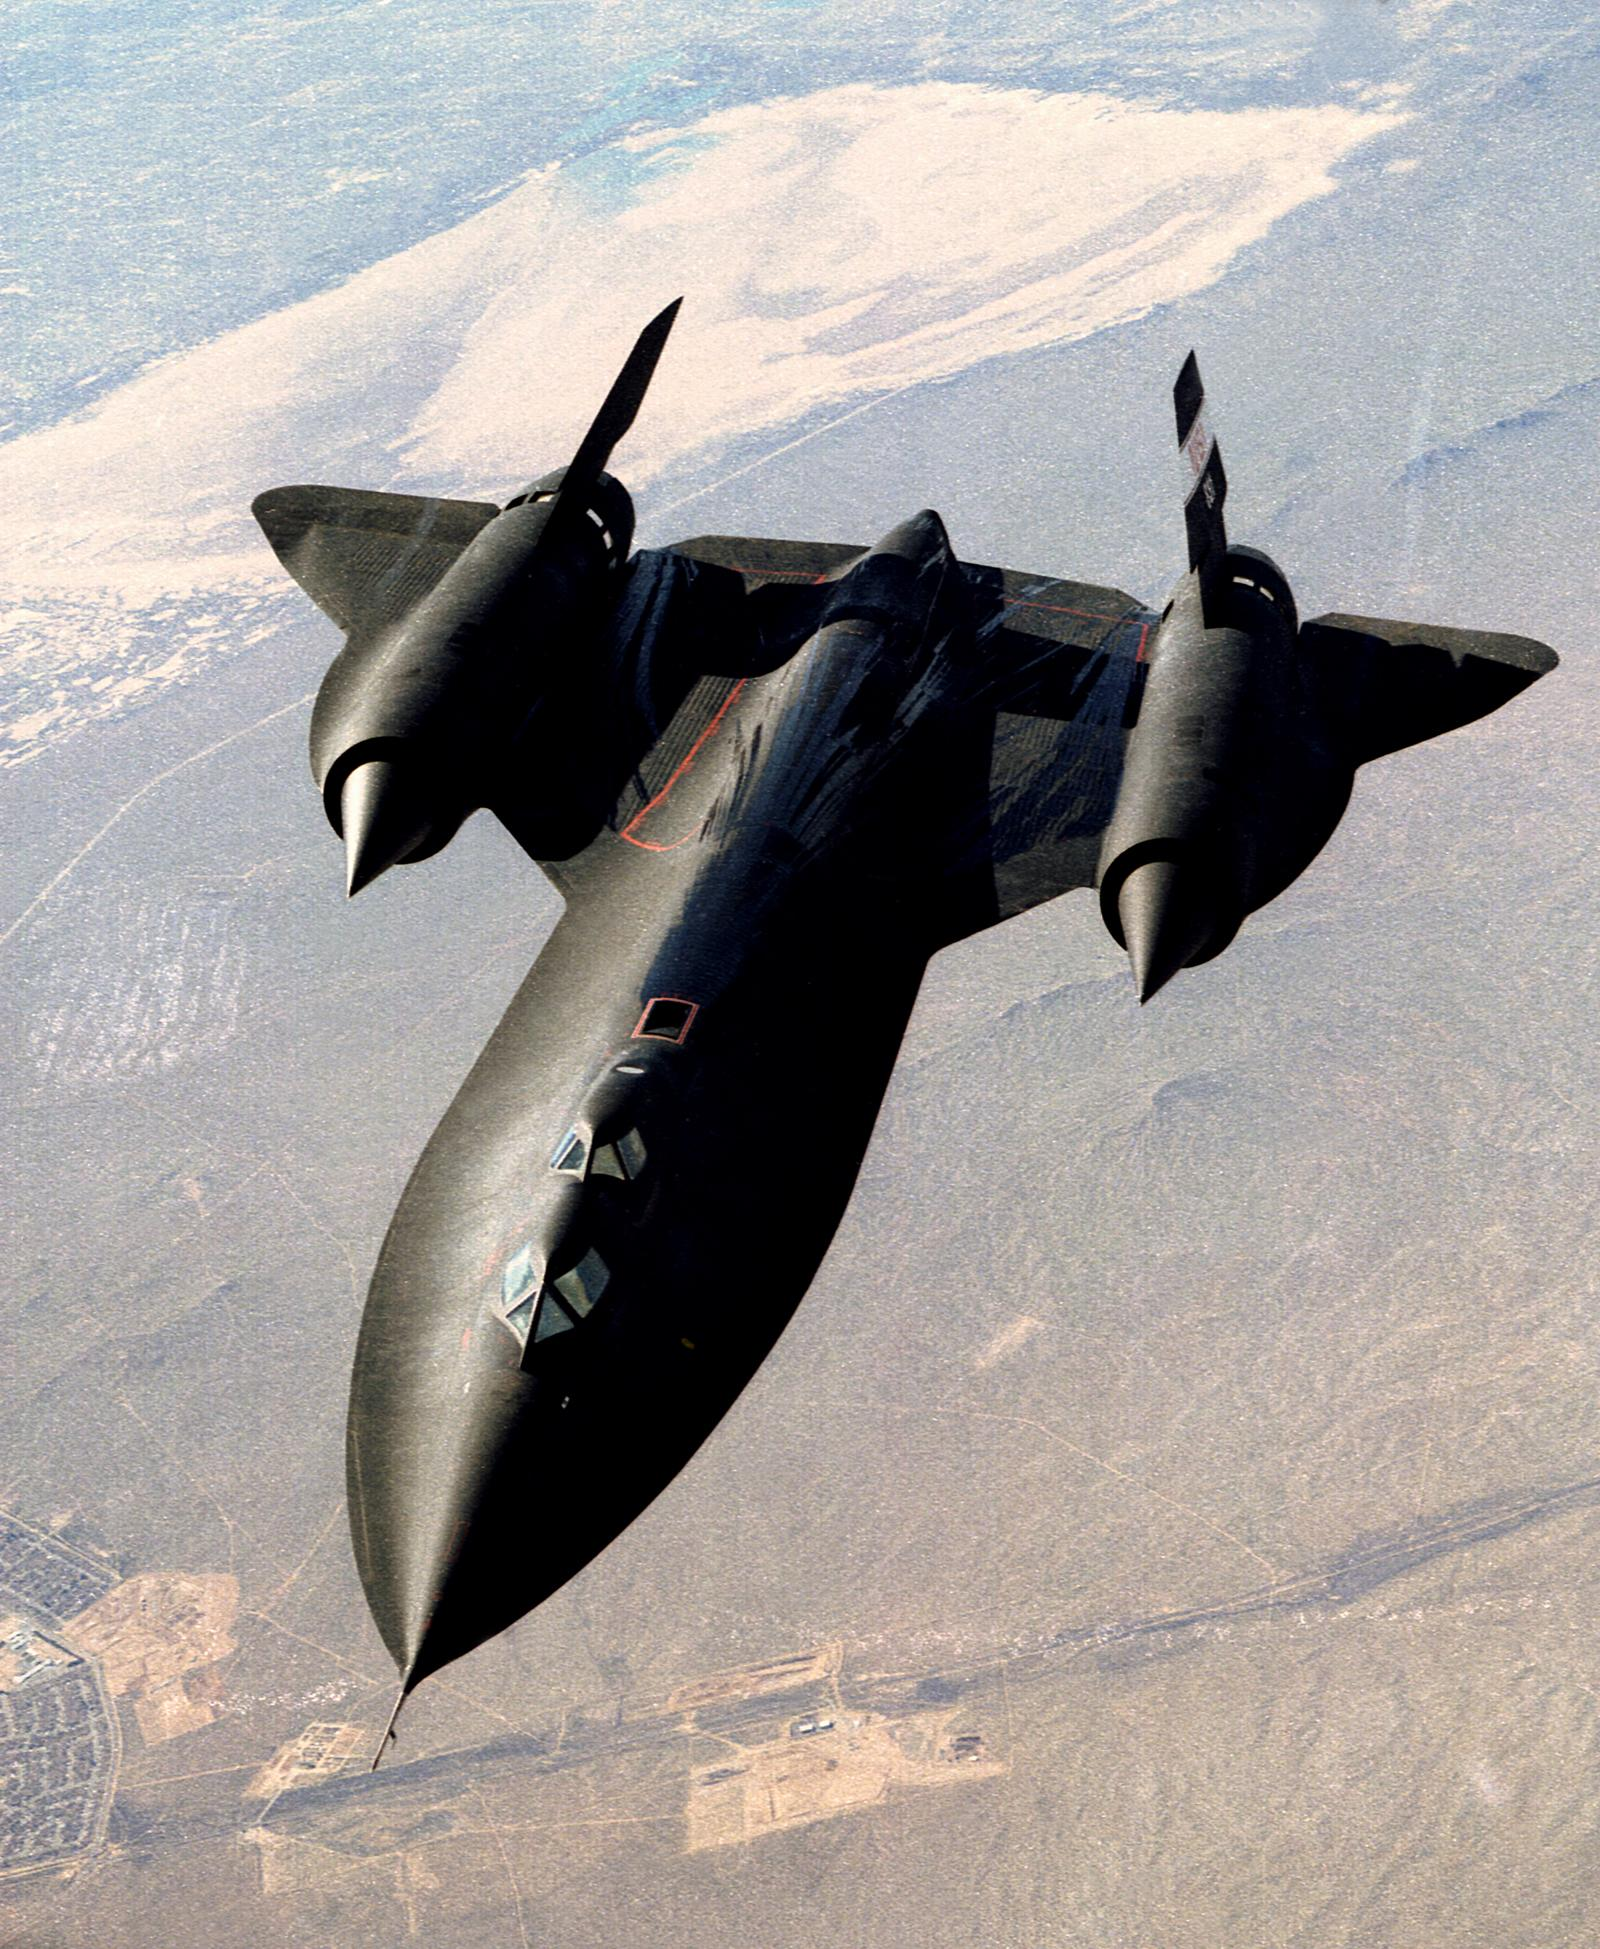 sr 71 blackbird nasa